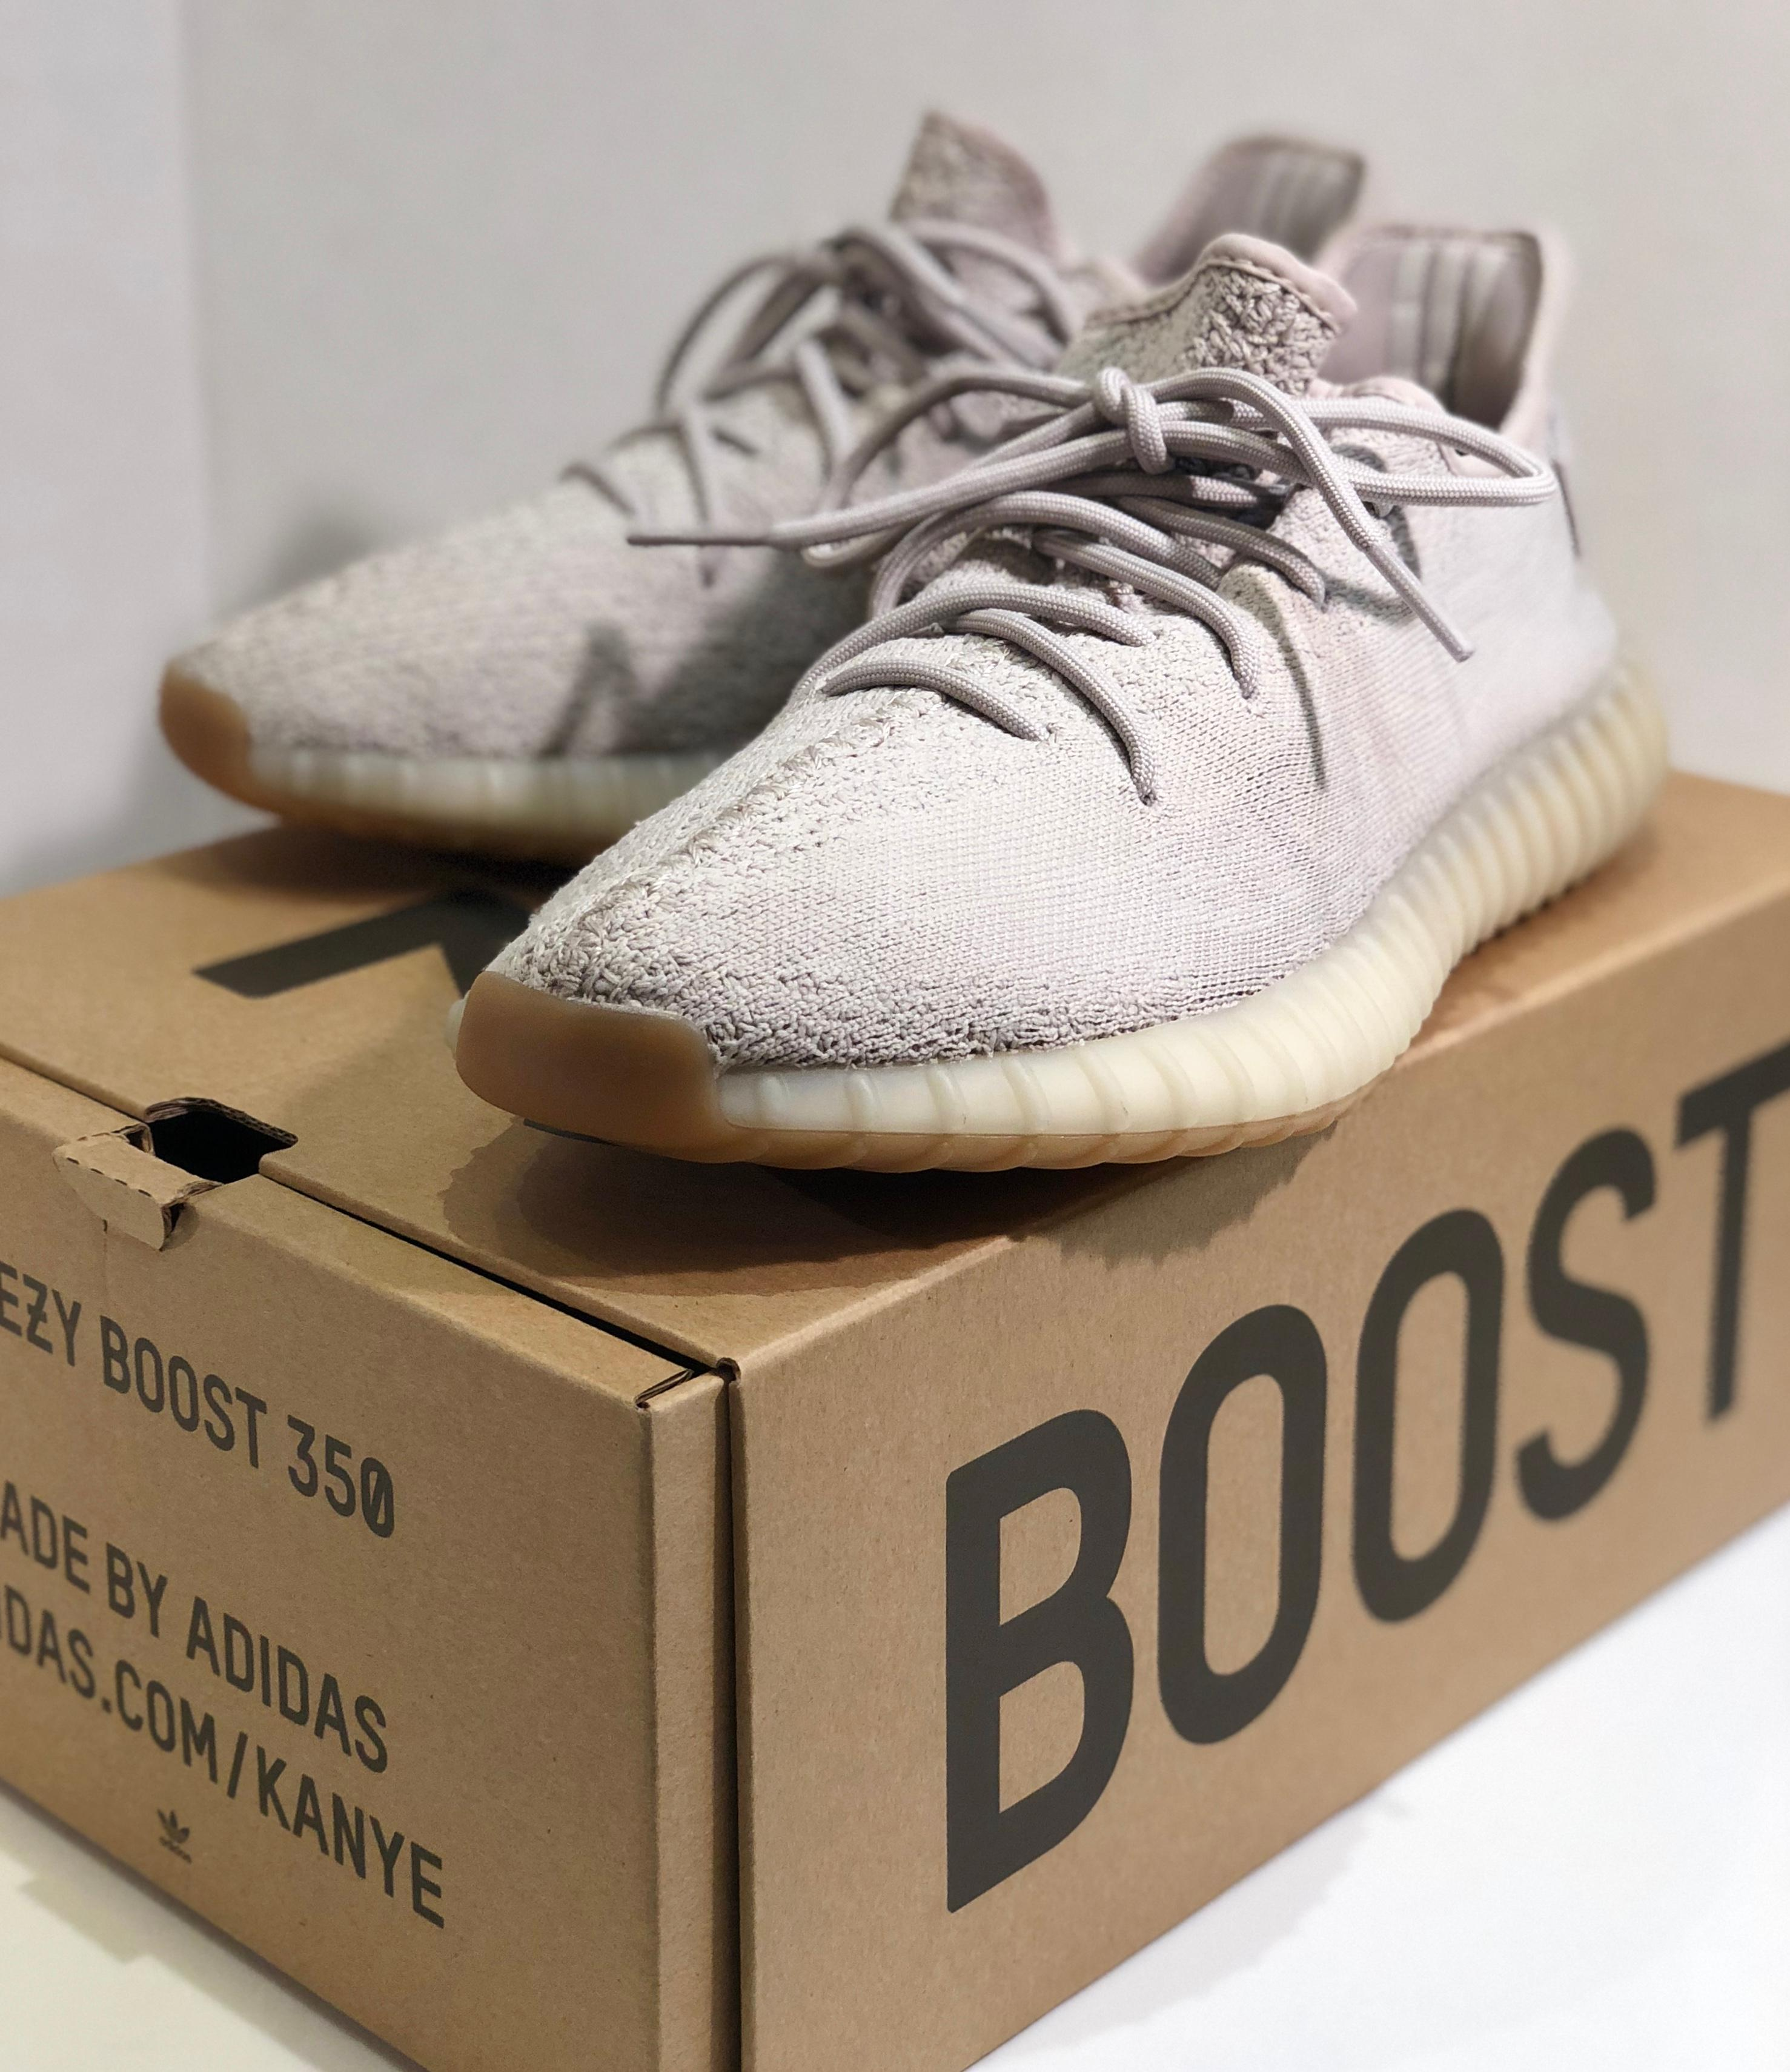 Yeezy Boost 350 V2 Adidas Kanye Sesame Originals US Size 10.5 Shoes with Box